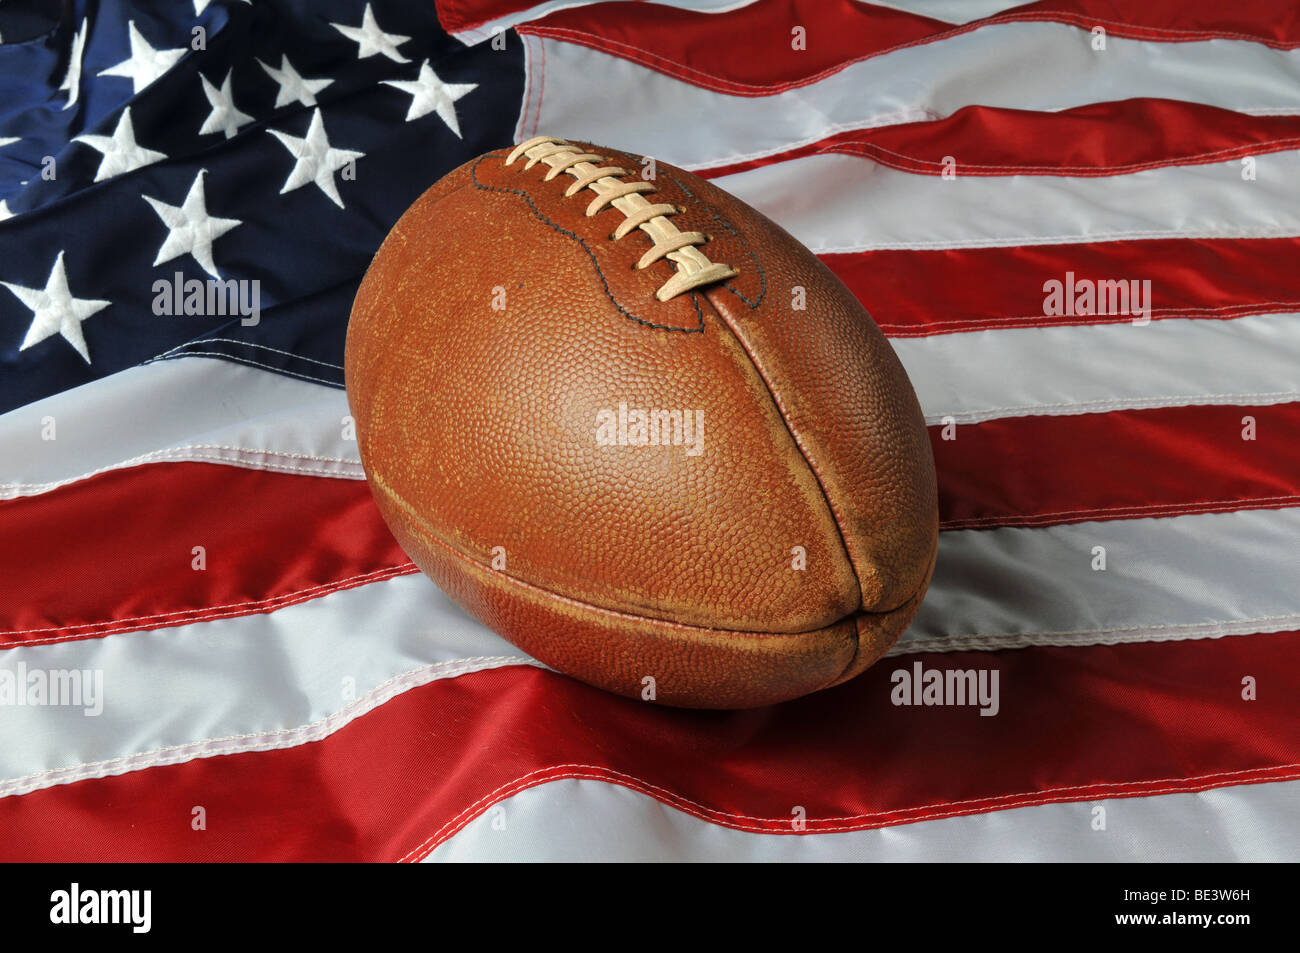 Football against a USA flag on a horizontal format - Stock Image